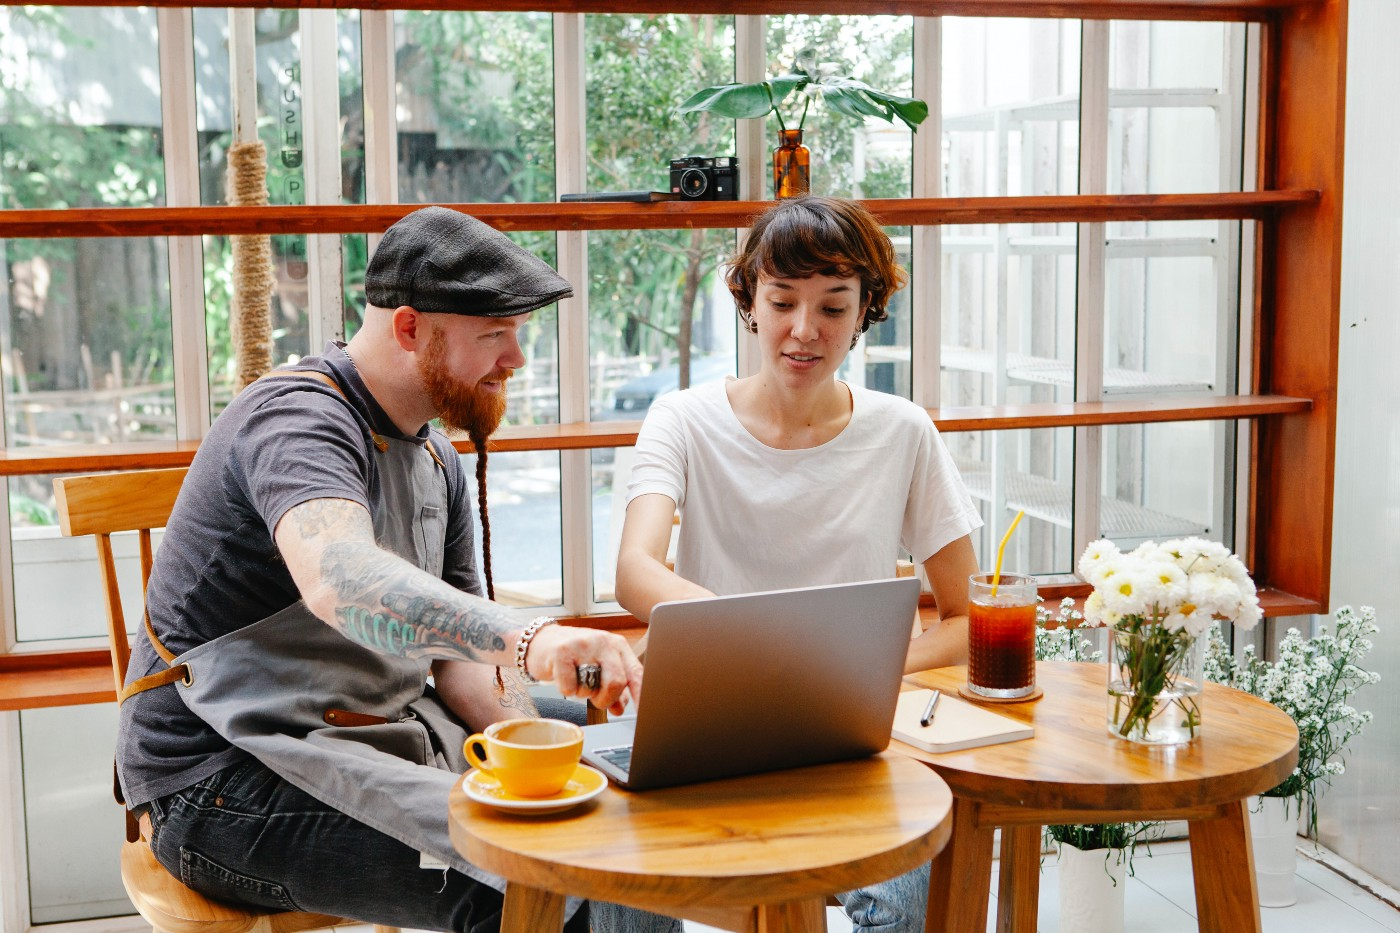 A man and a woman working on a laptop at a table.